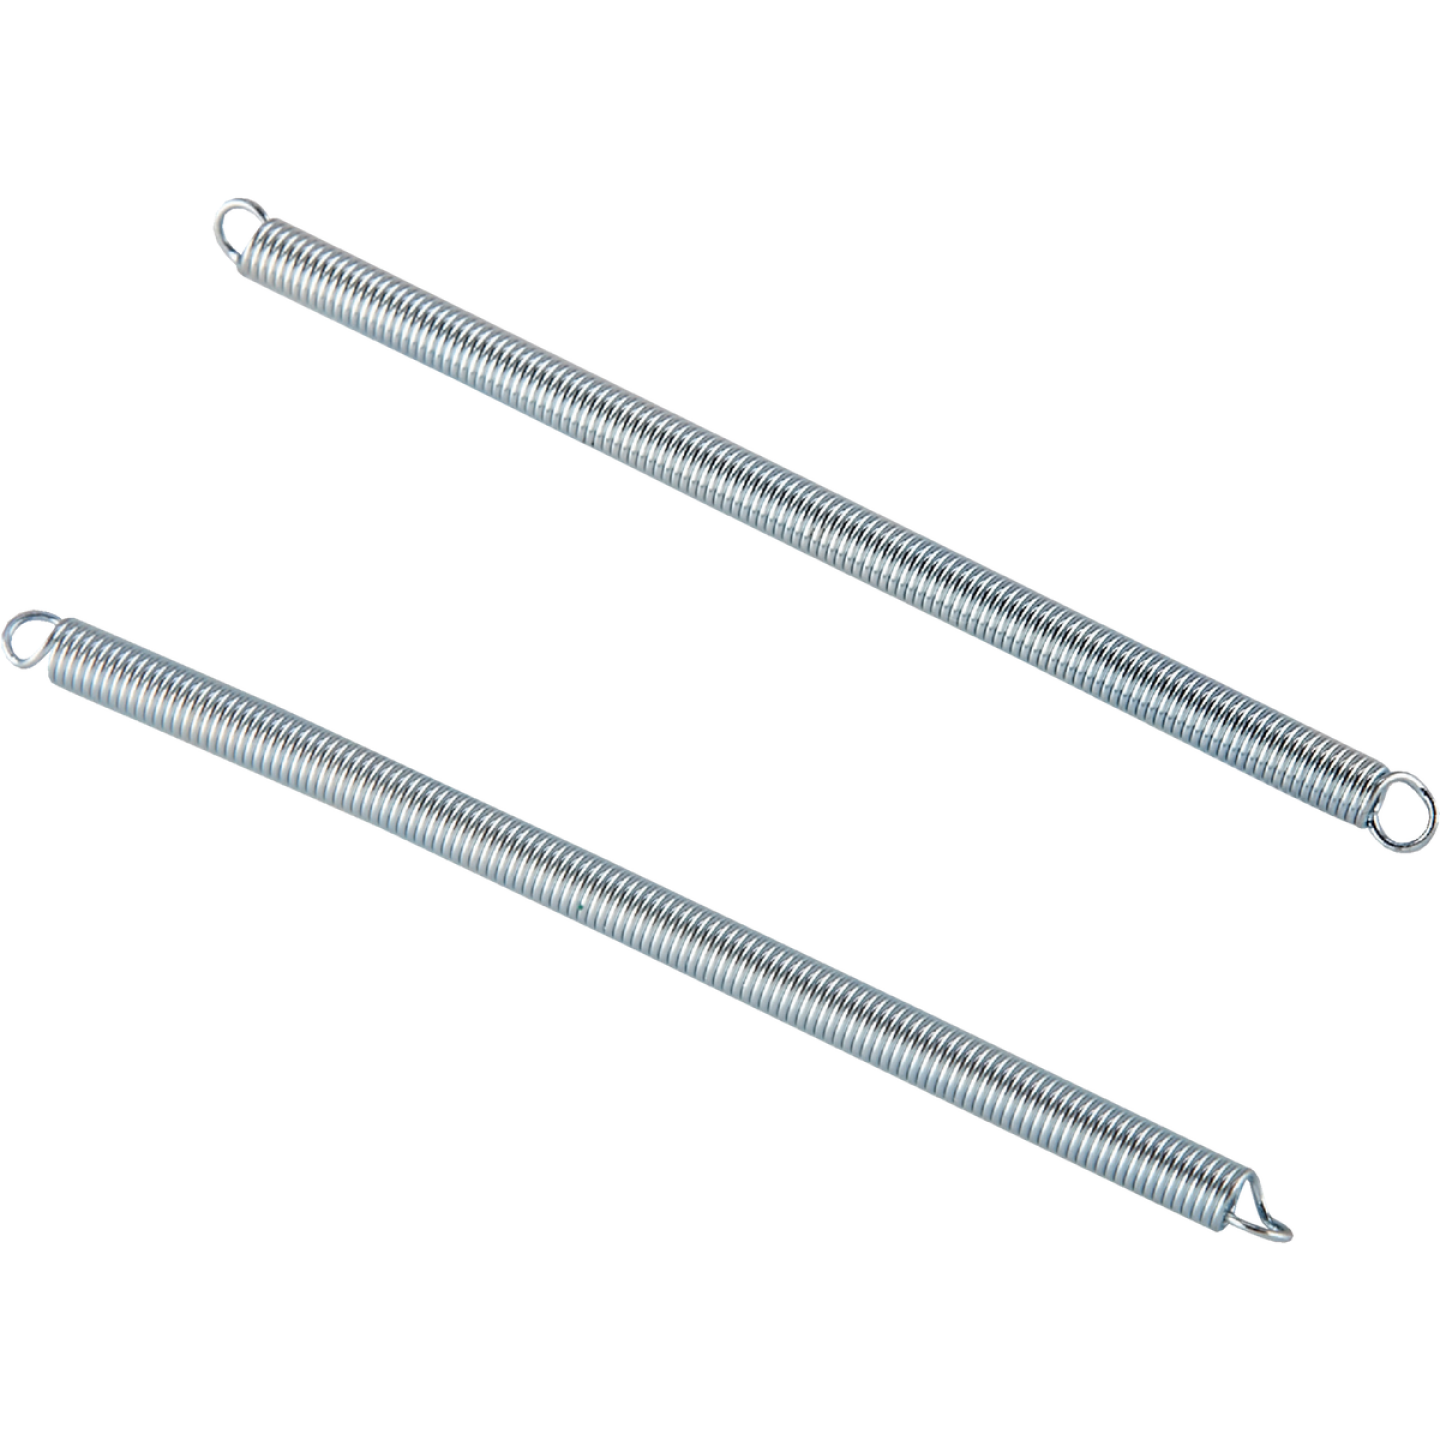 Century Spring 11-1/2 In. x 1-1/2 In. Extension Spring (1 Count) Image 1